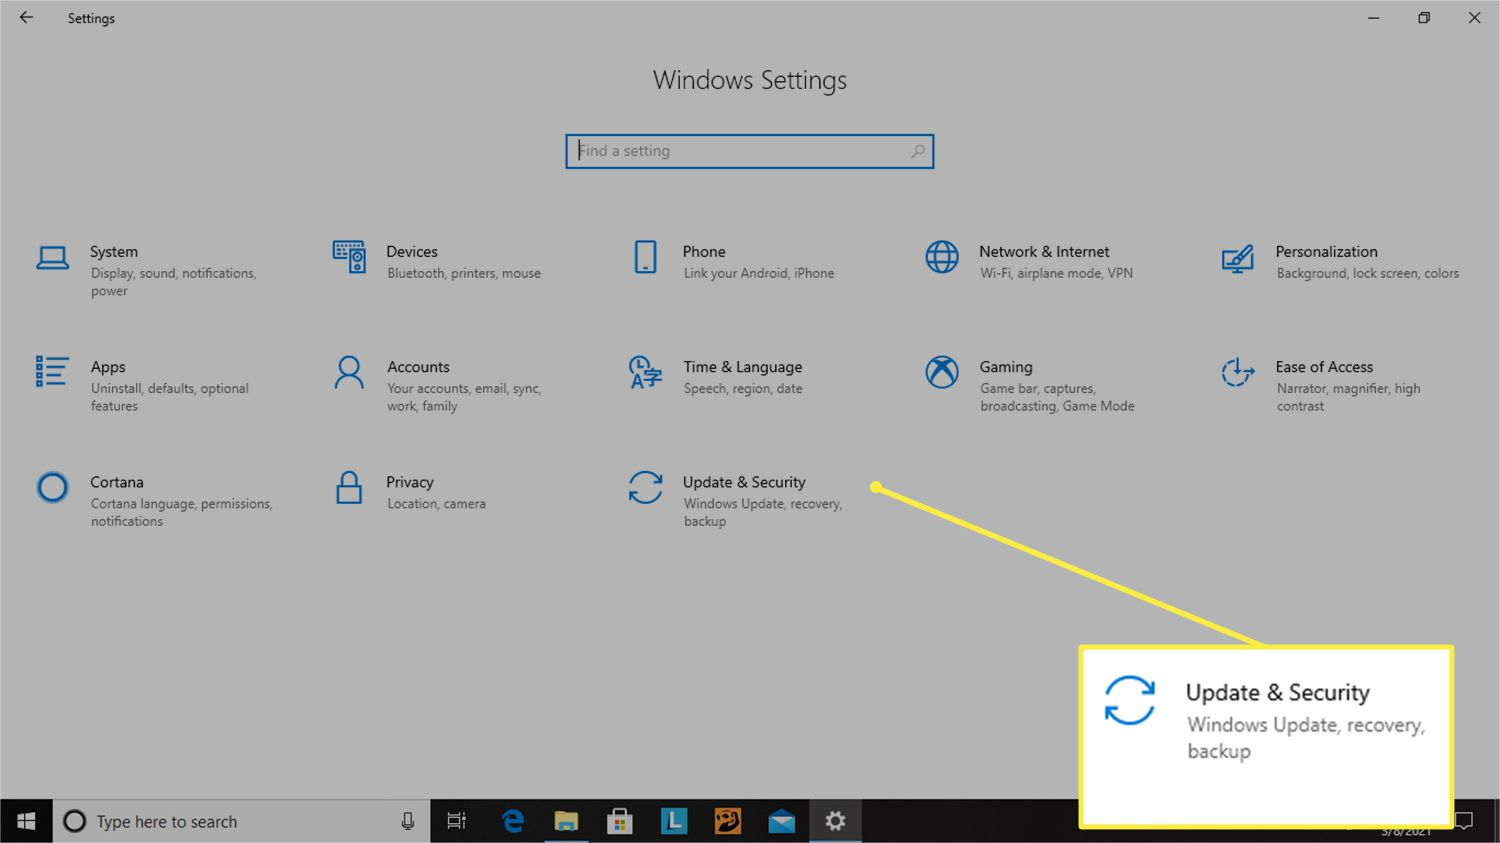 Update and Security option from Windows Settings menu